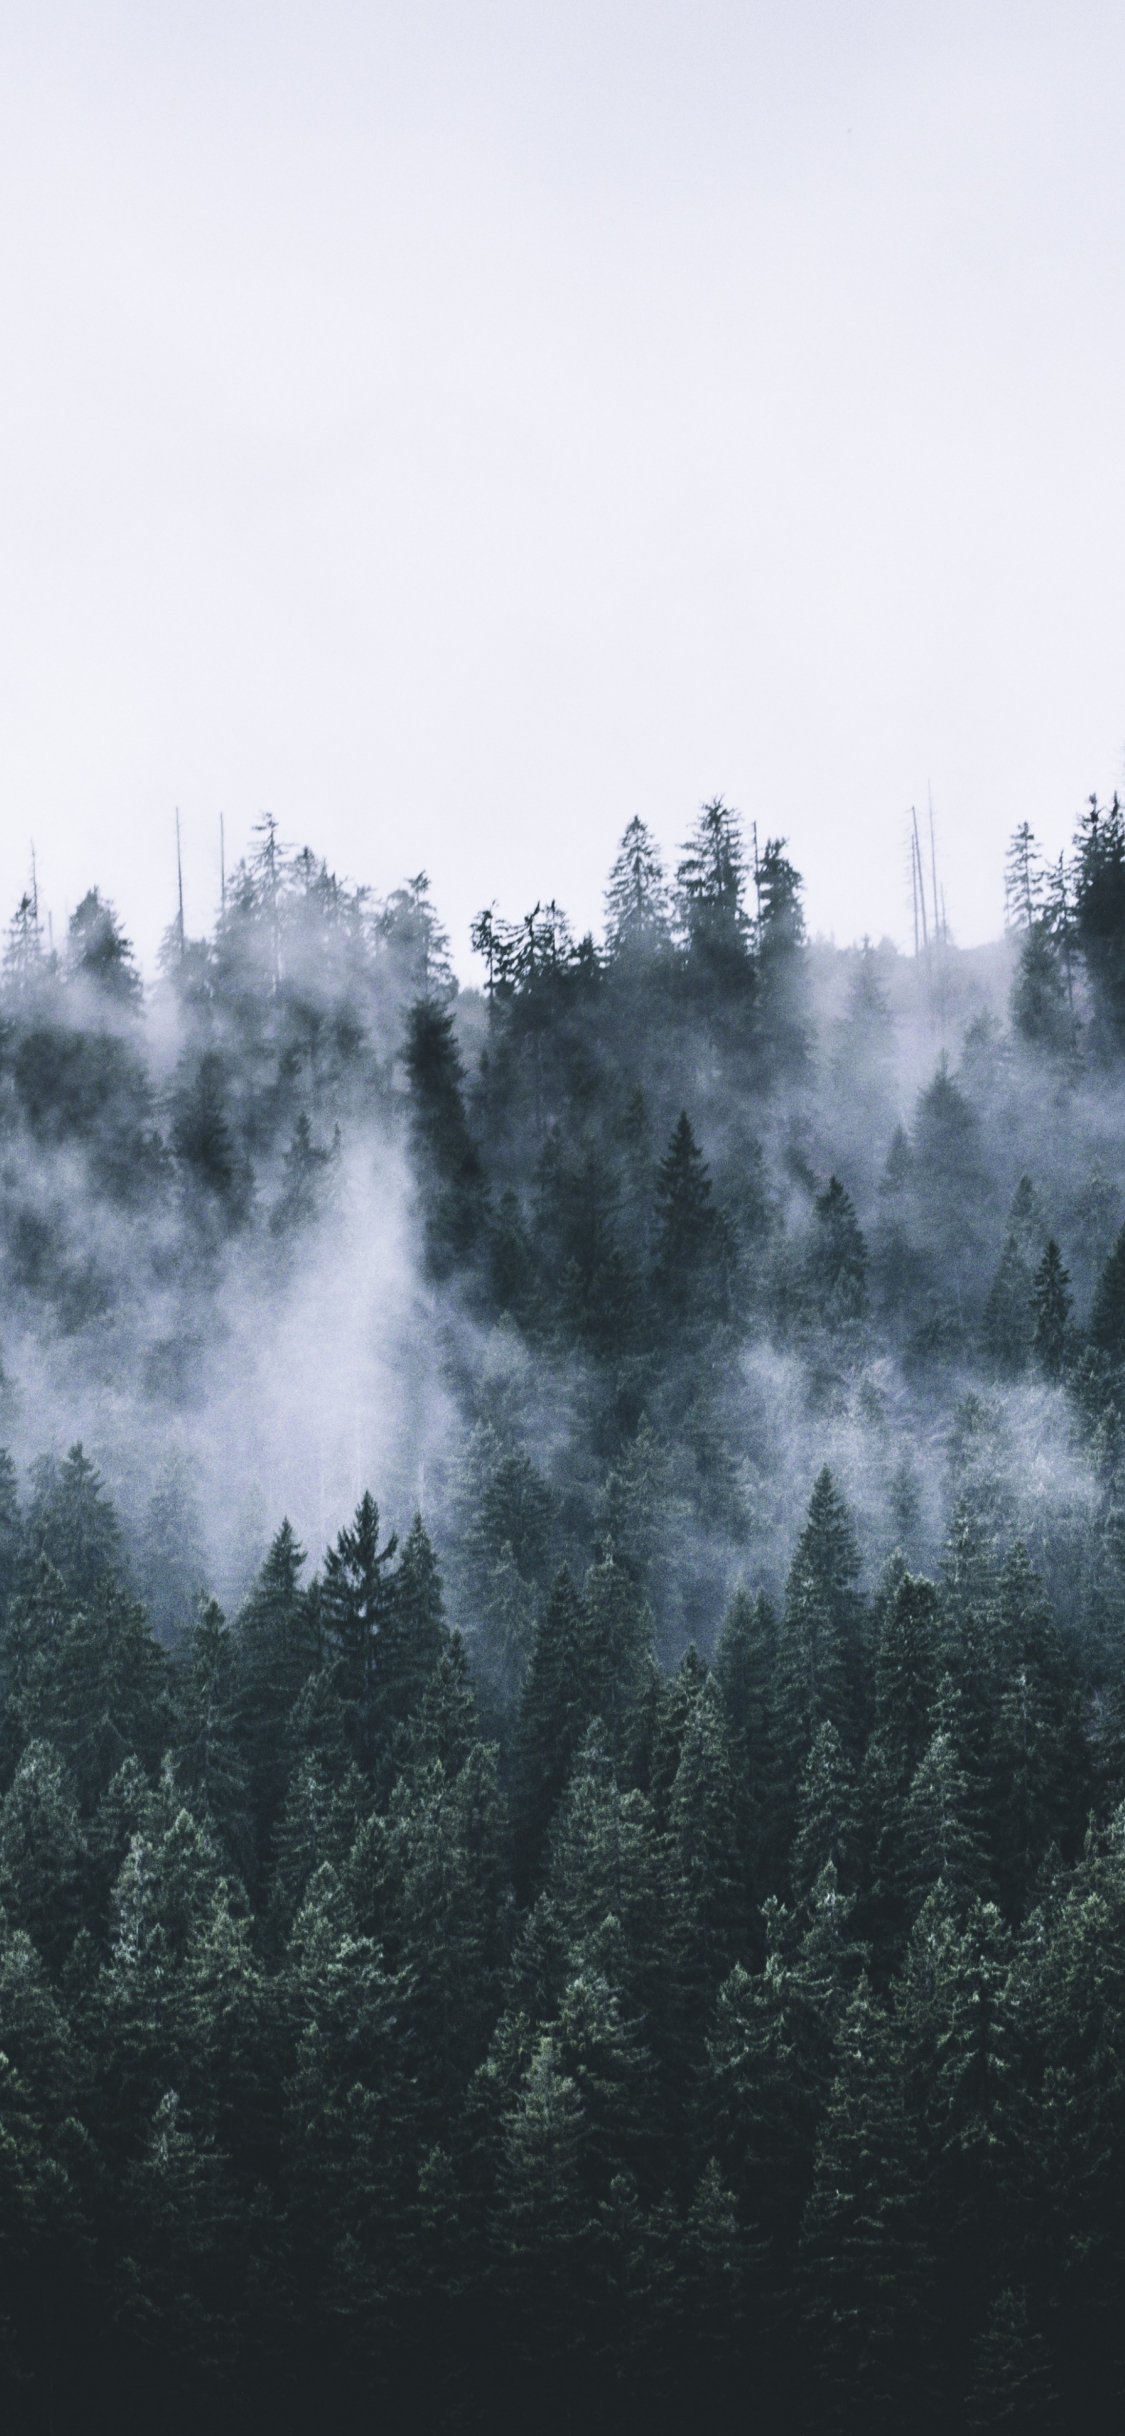 Download 1125x2436 Wallpaper Green Forest Fog Nature Trees Dawn